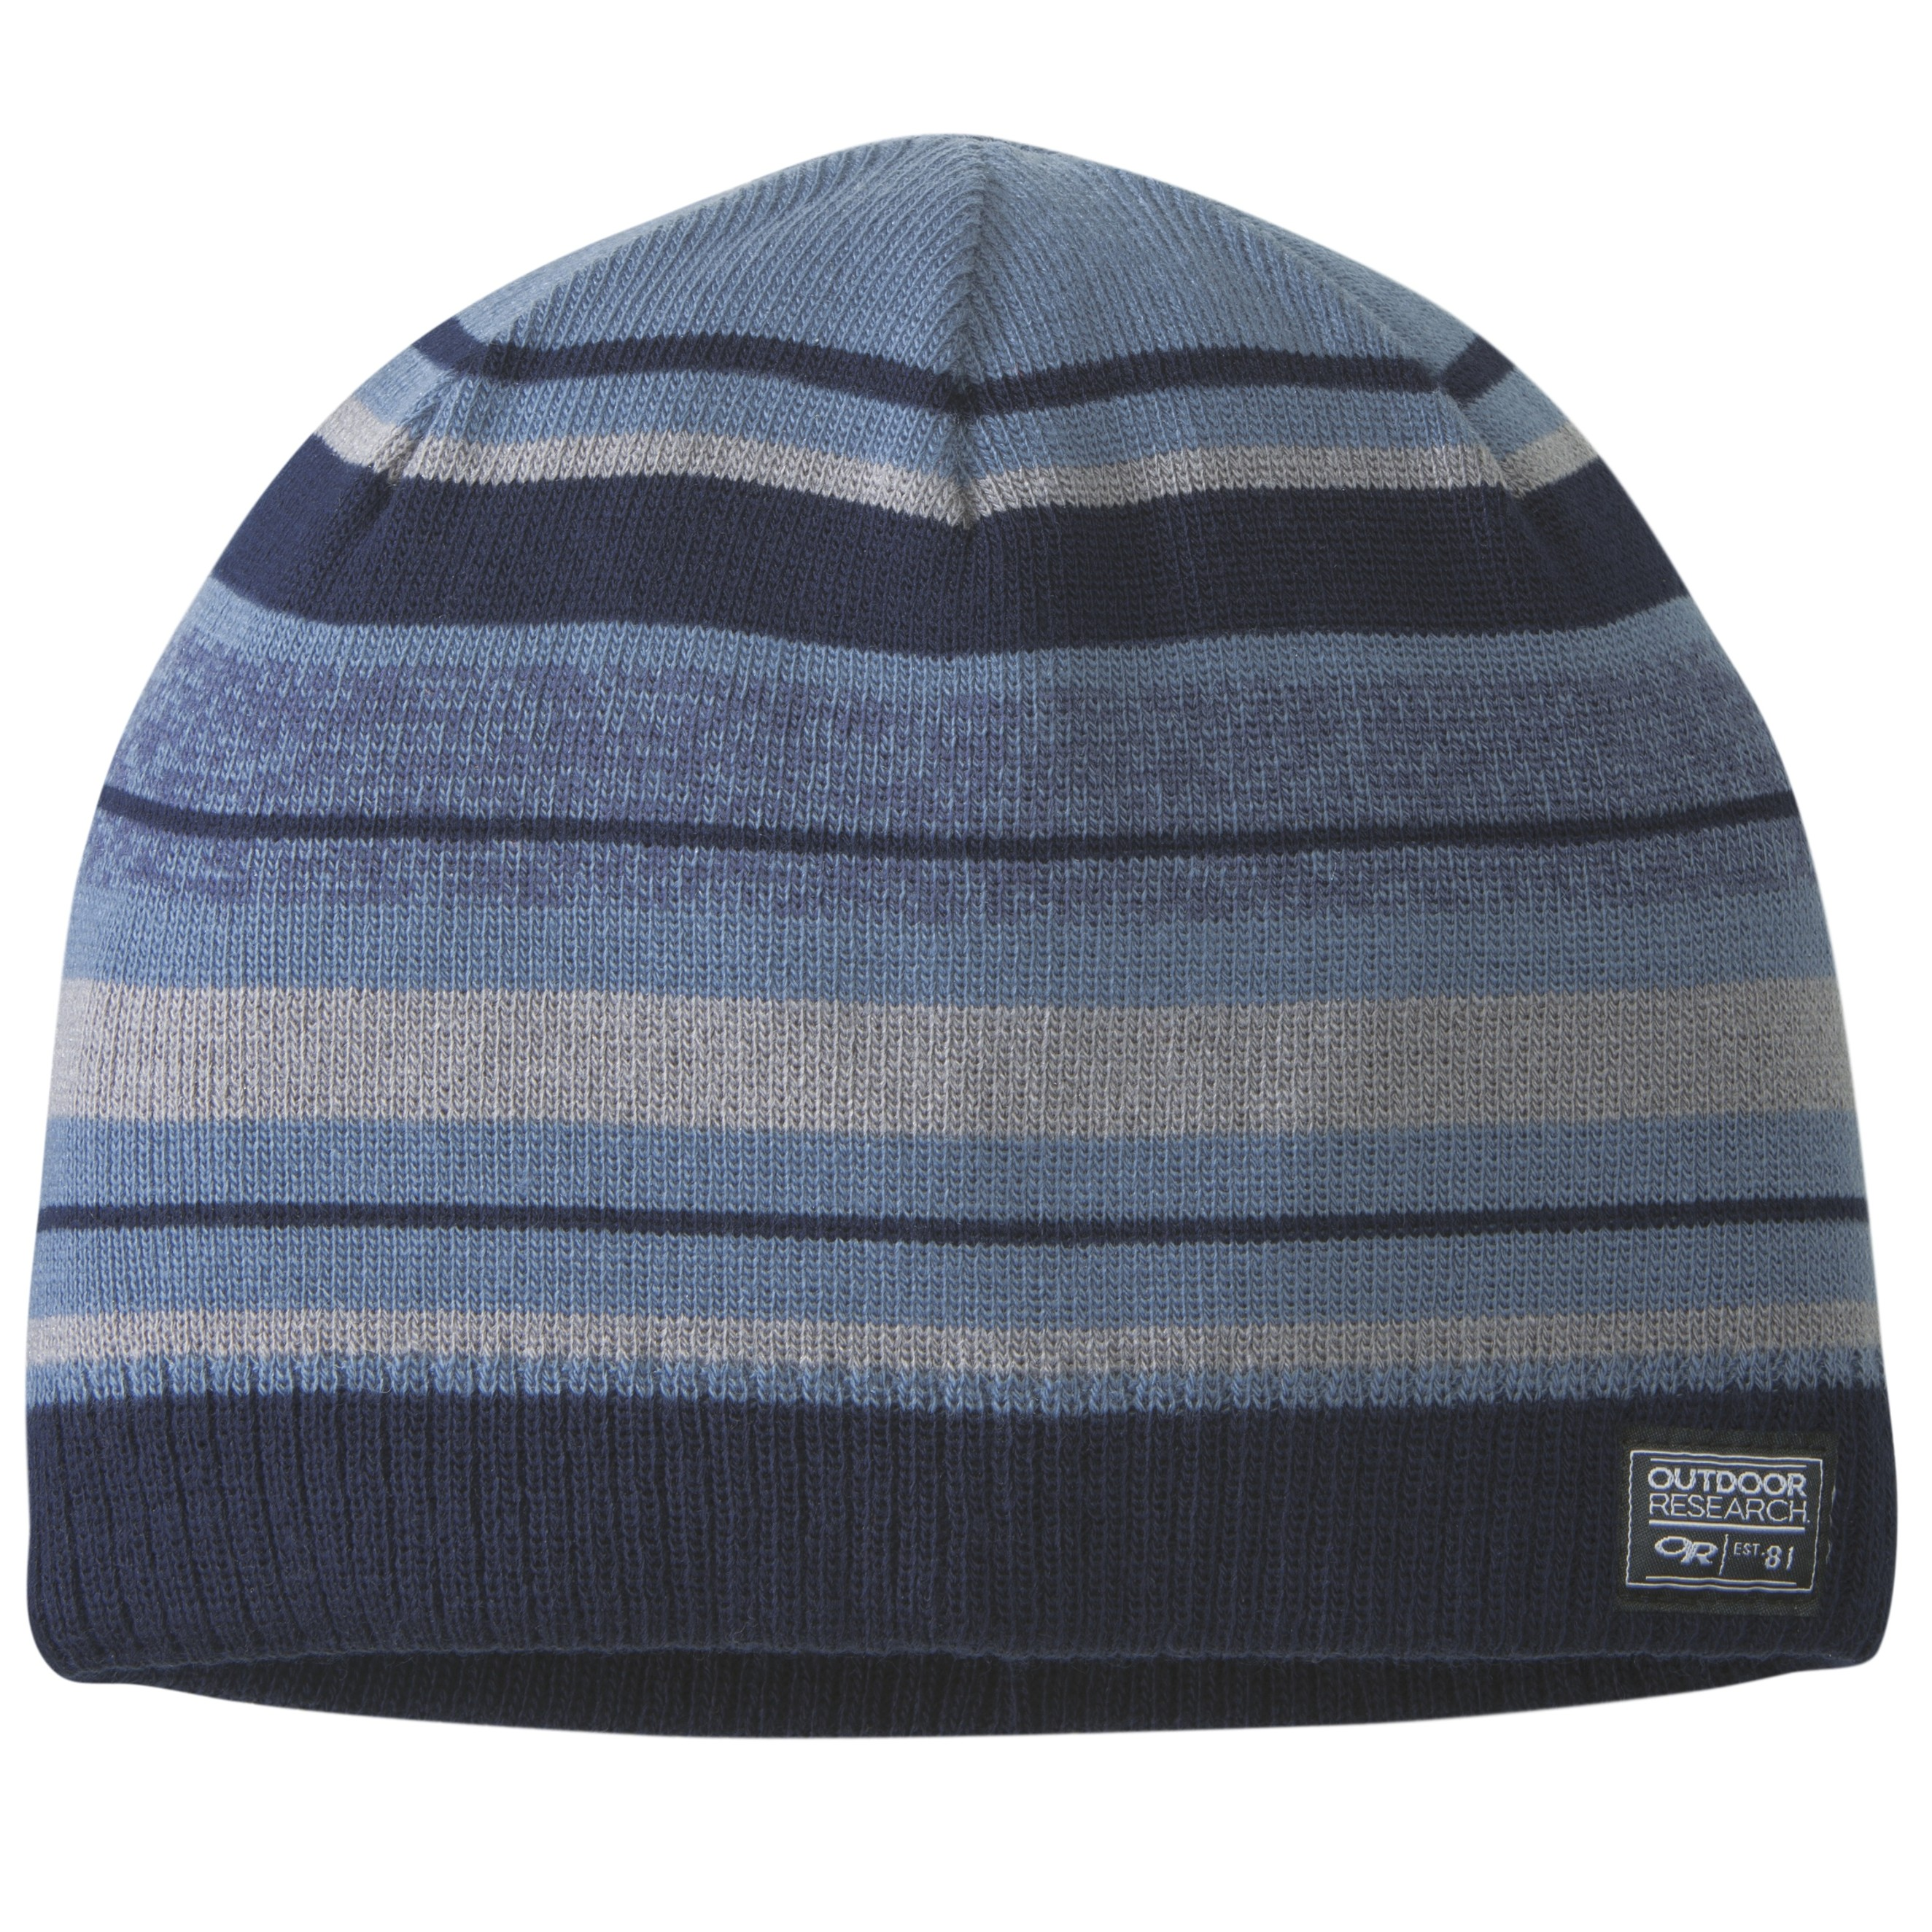 Outdoor Research Baseline Insulated Beanie - Night